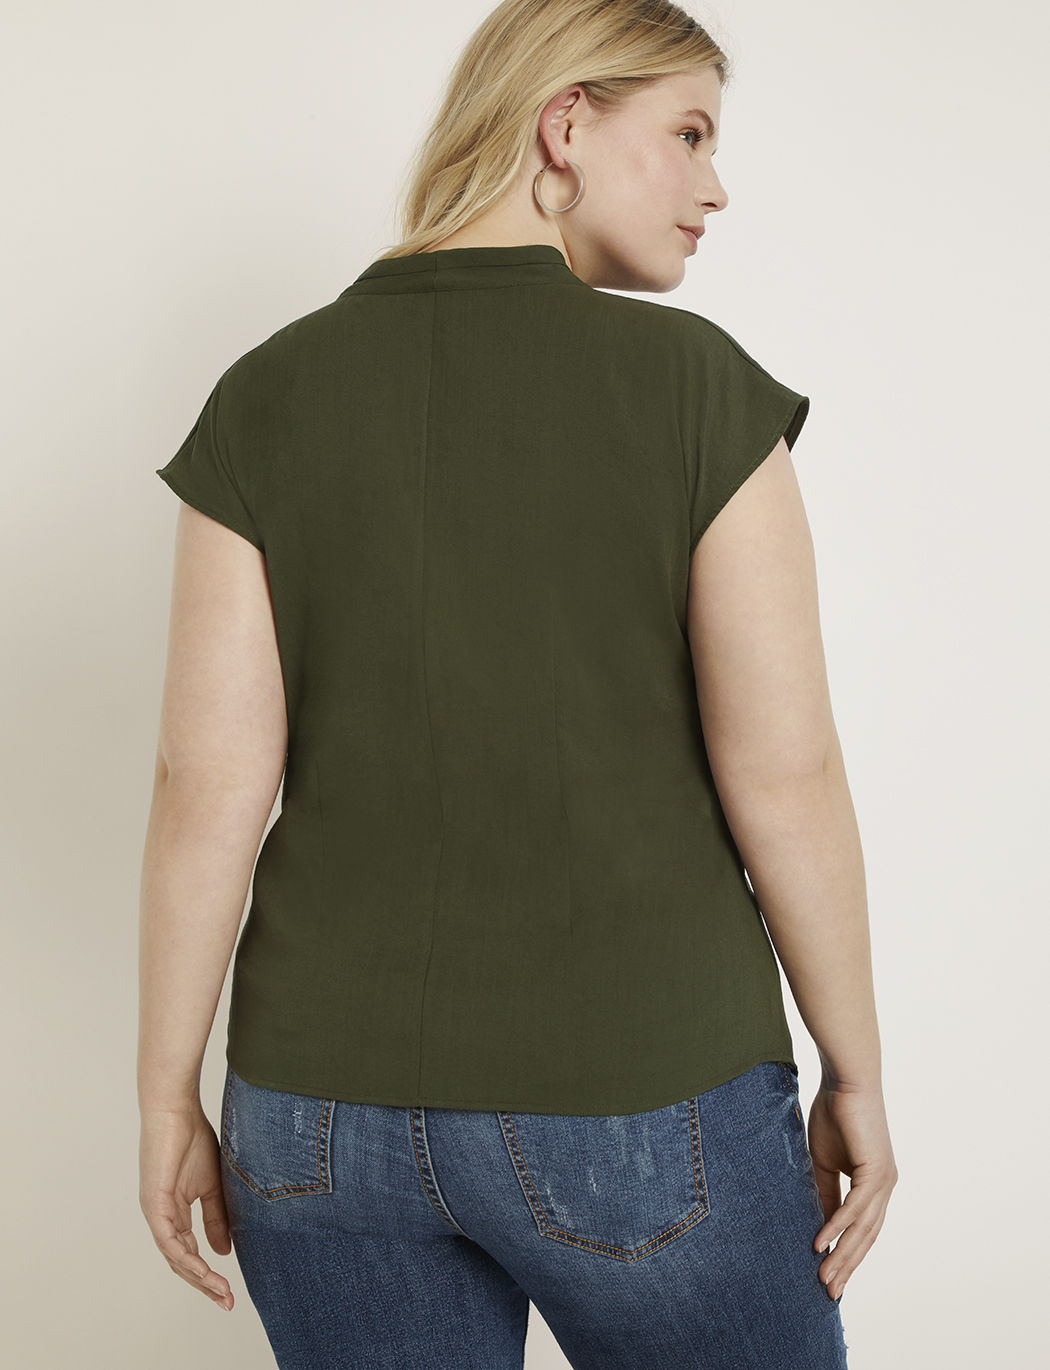 Cap Sleeve Drape Front Top